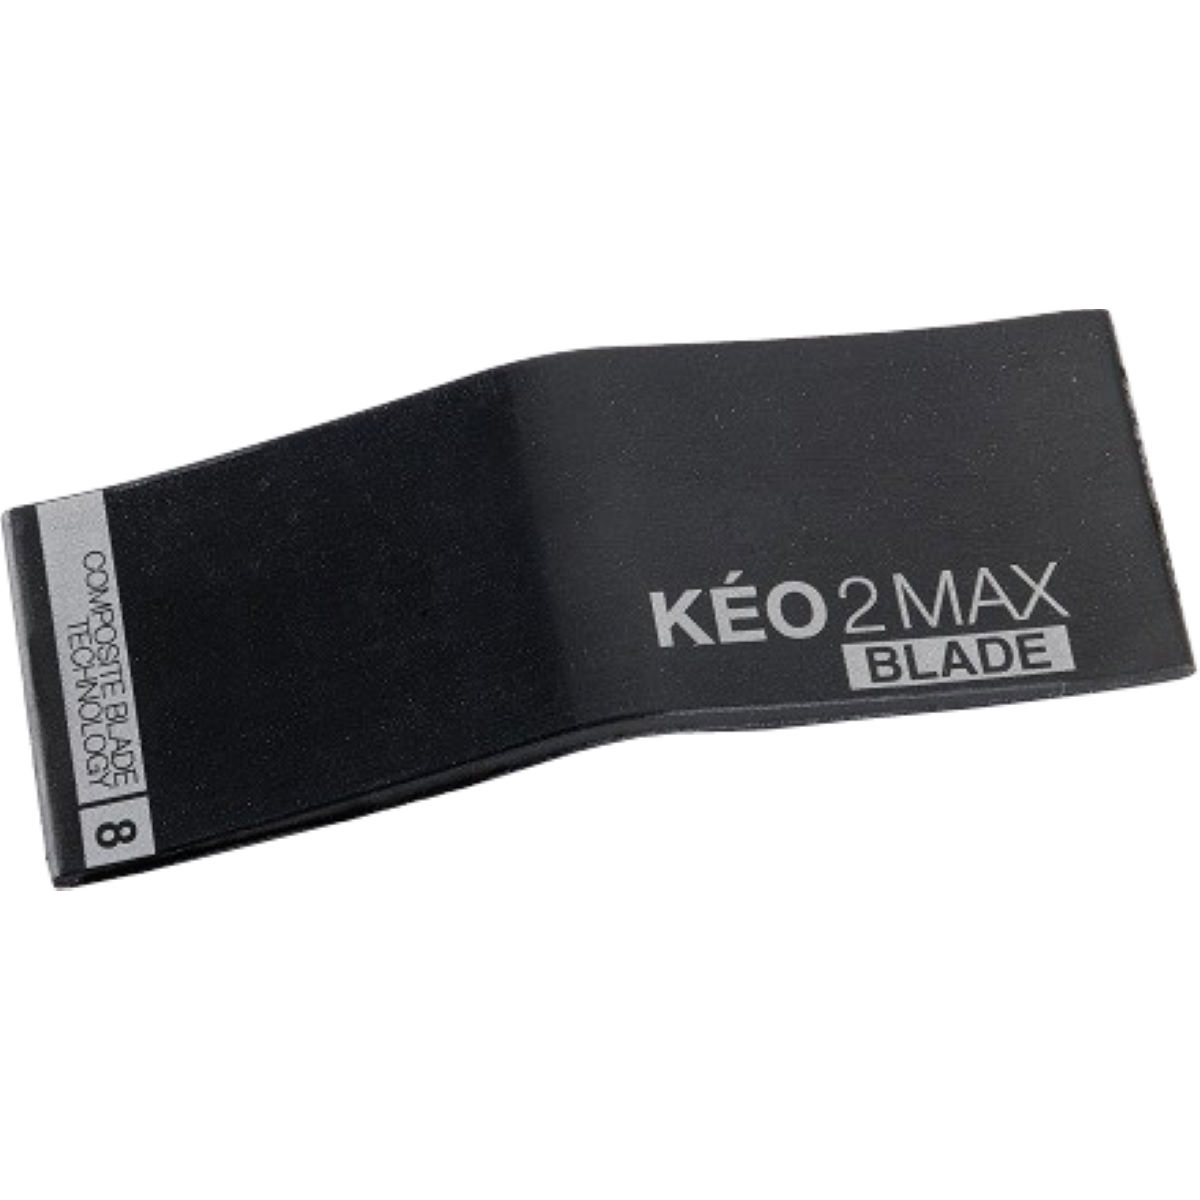 Ressorts de tension Look Keo 2 Max Blade - 8Nm Tension Spring Gris/Noir Pédales automatiques